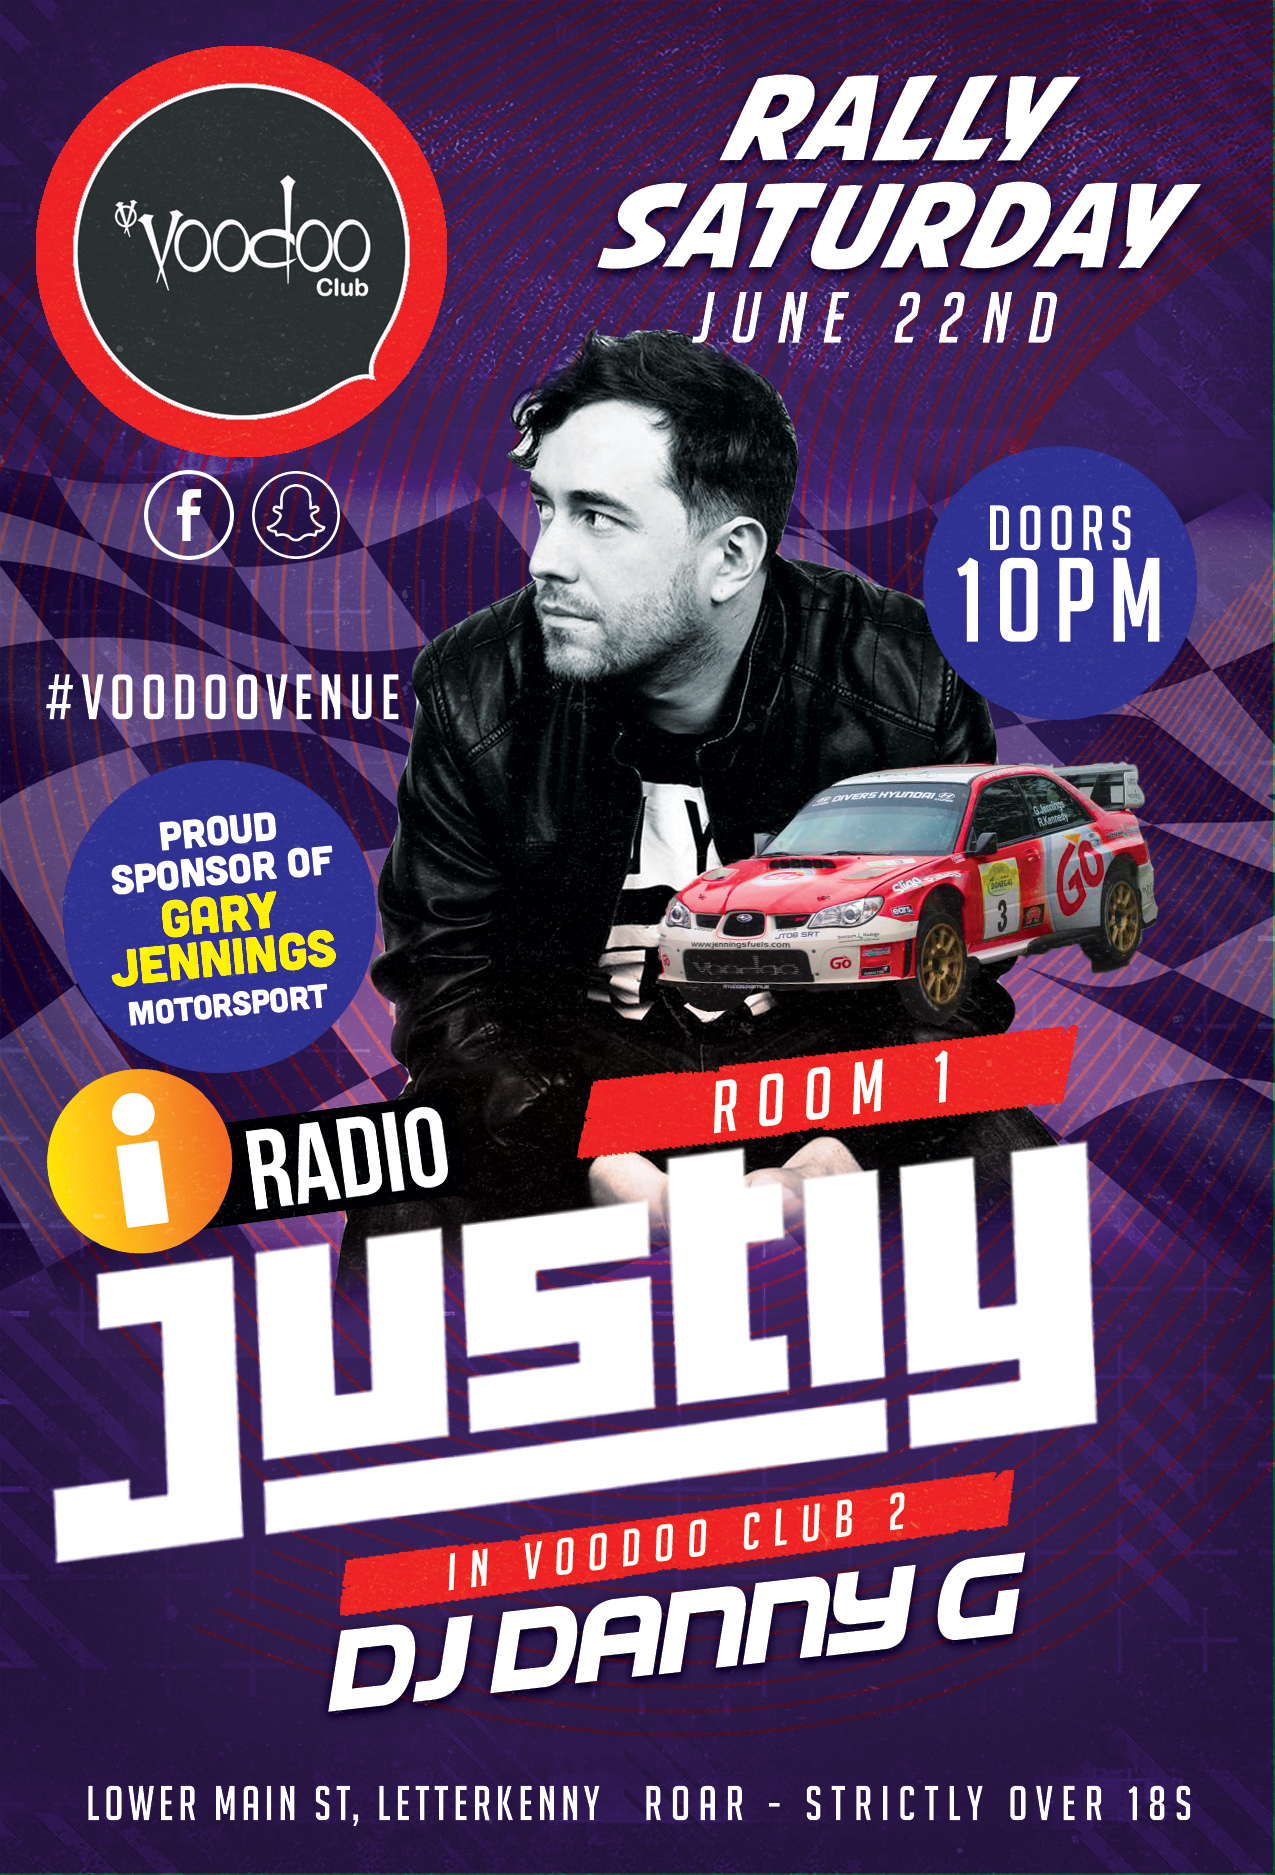 voodoo-venue---RALLY-SATURDAY--justiy-sat-june-22-2019.jpg